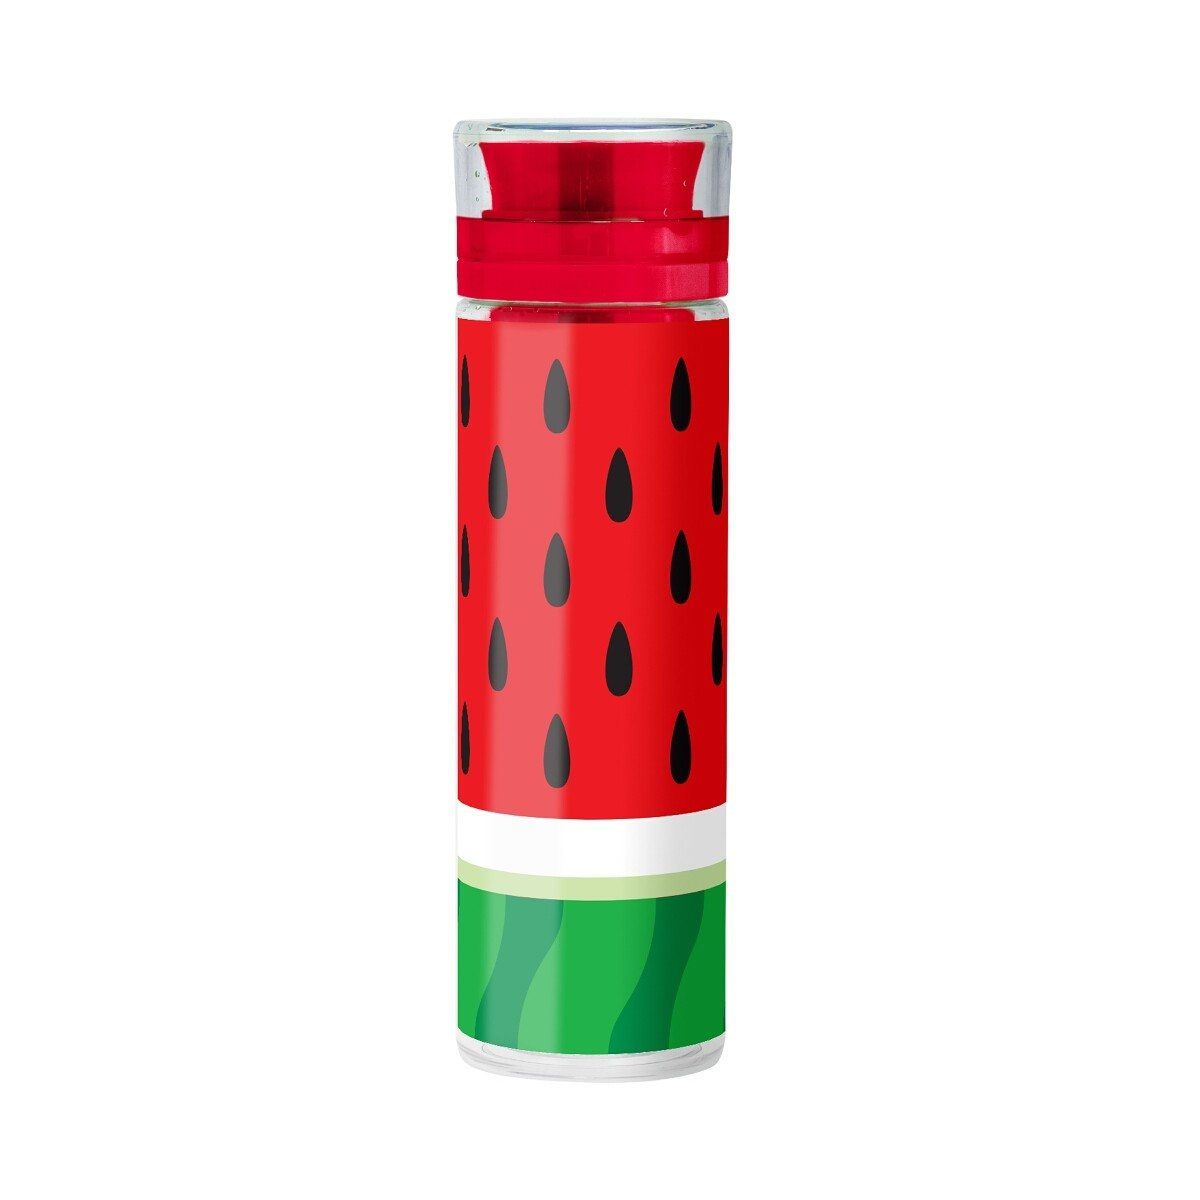 Fruity waterbottles